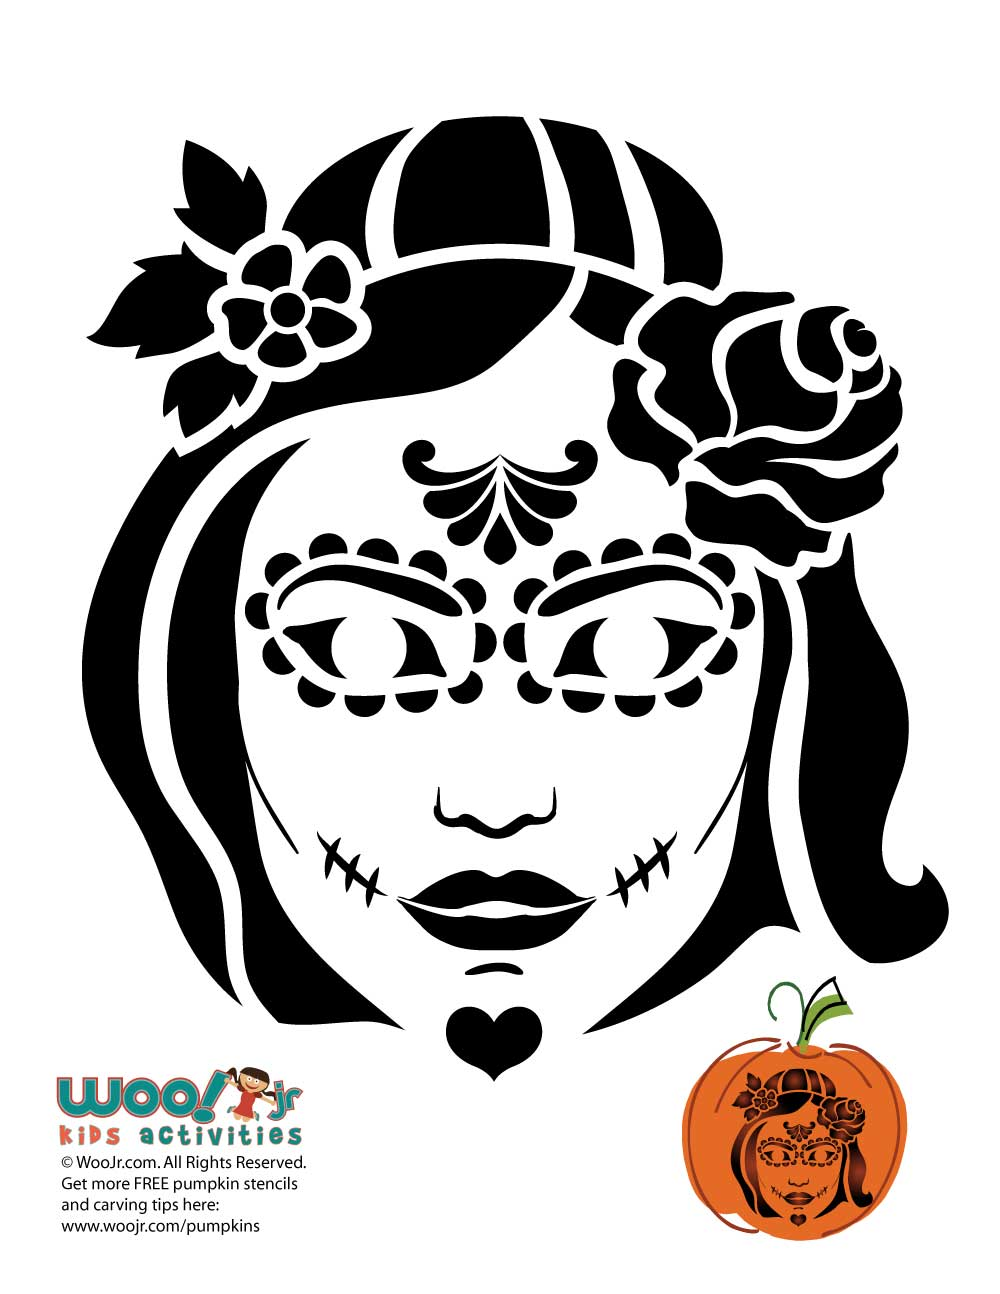 Day of the dead woman pumpkin stencil woo jr kids